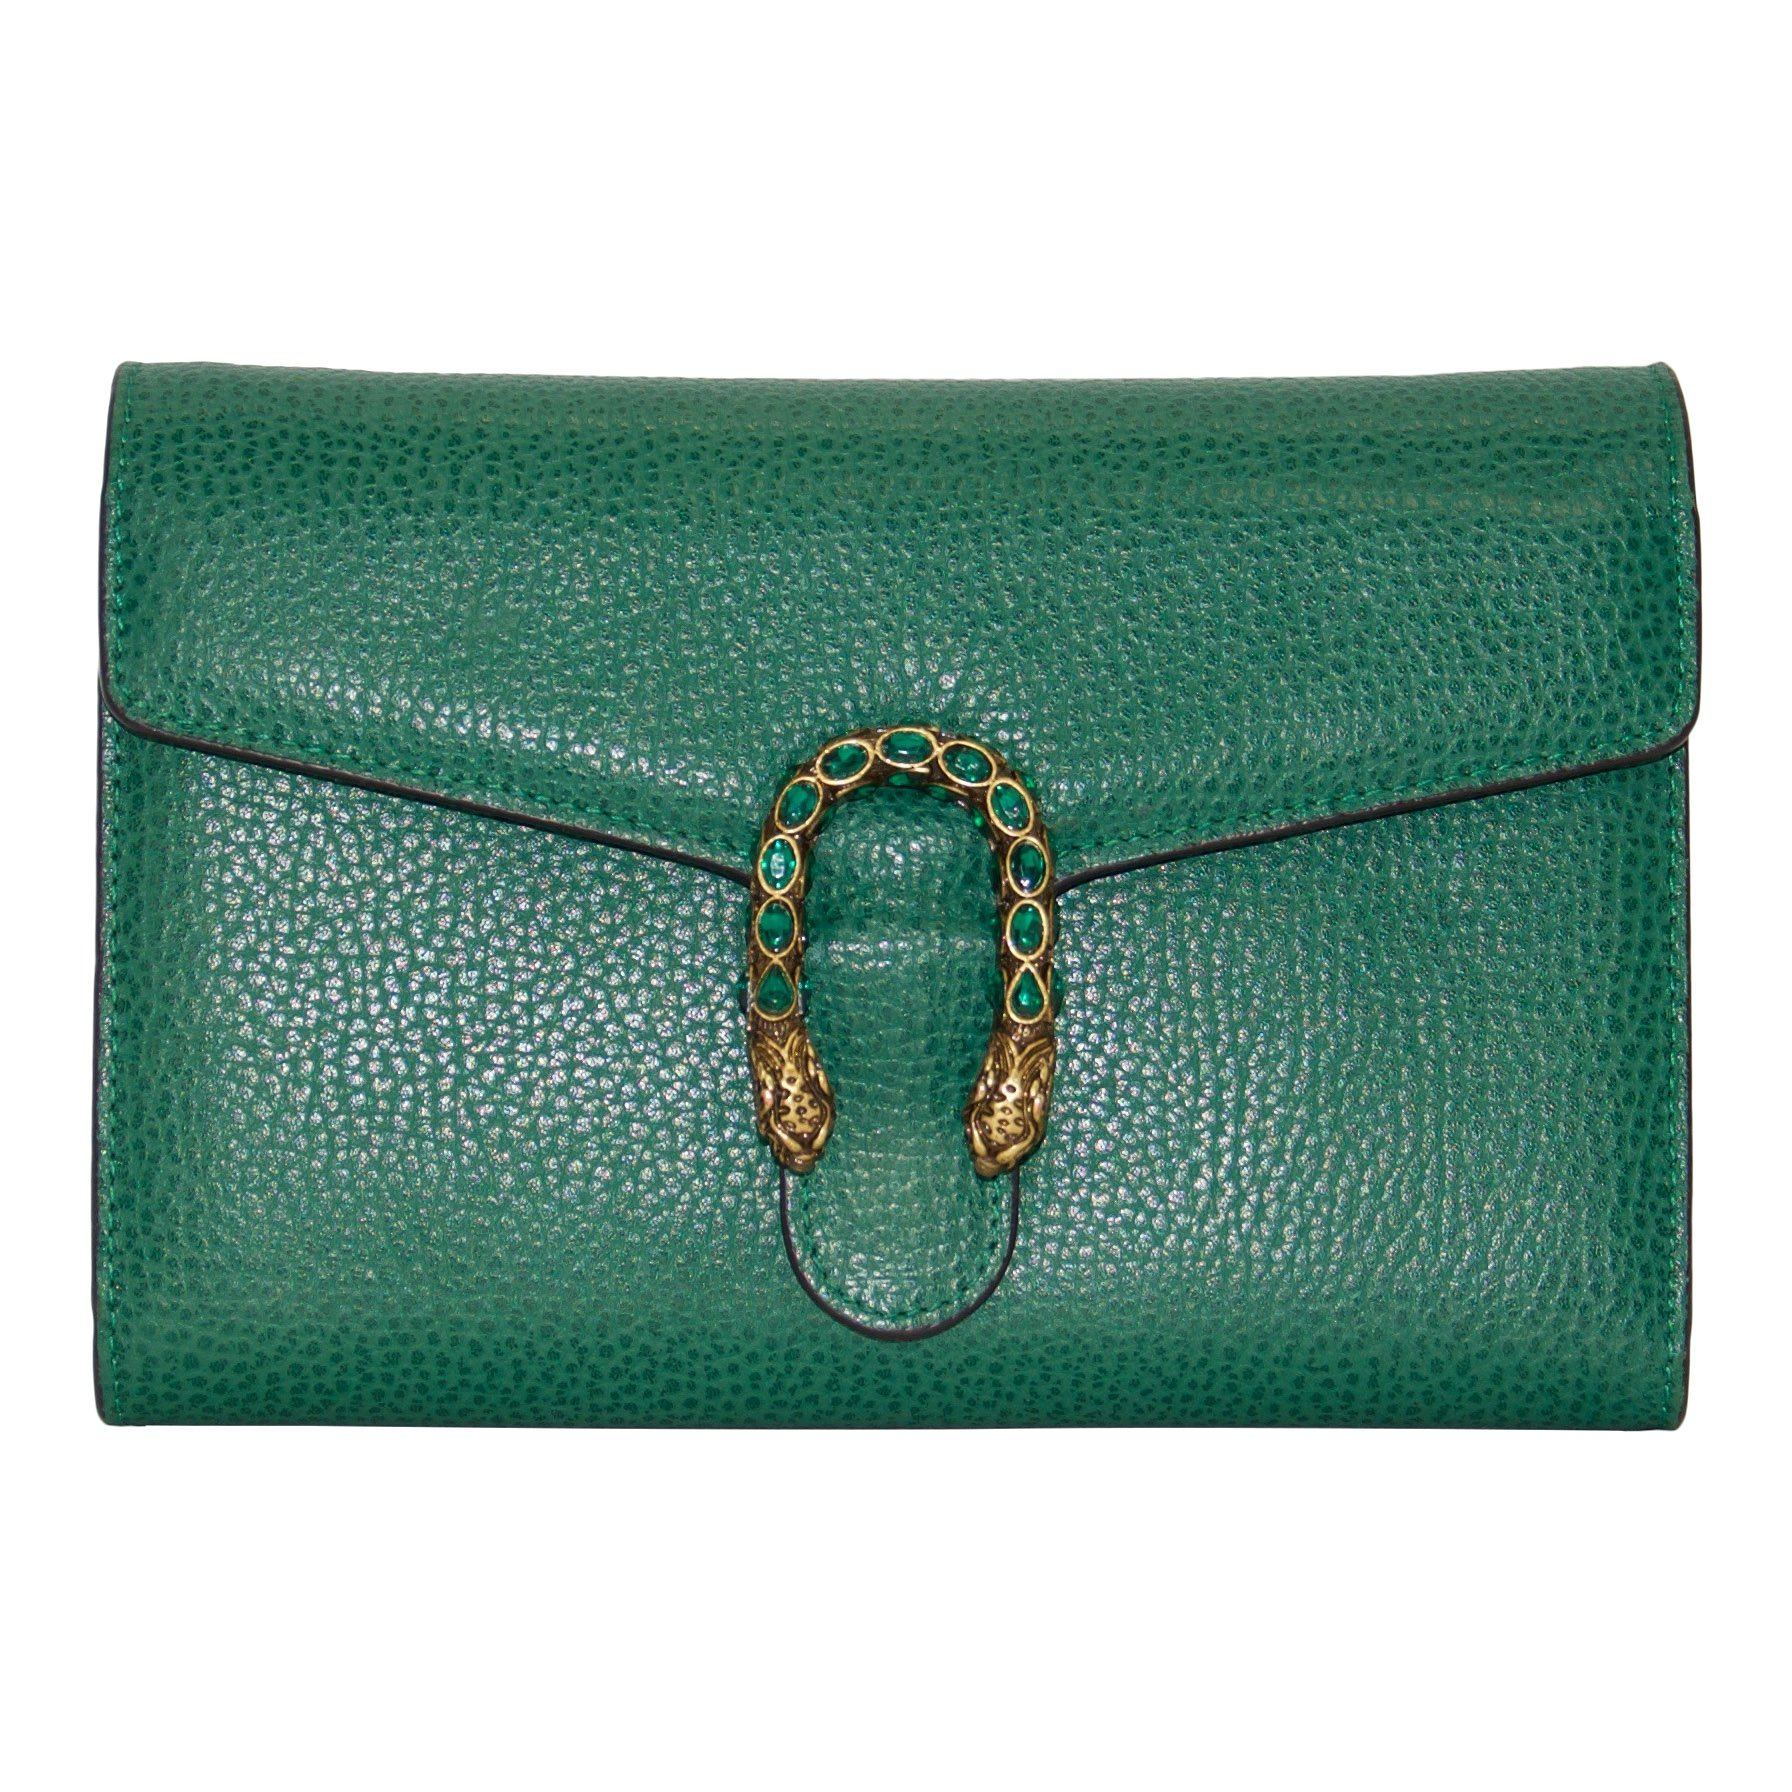 41089011a7b Gucci Dionysus Wallet on Chain Bag - Oliver Jewellery